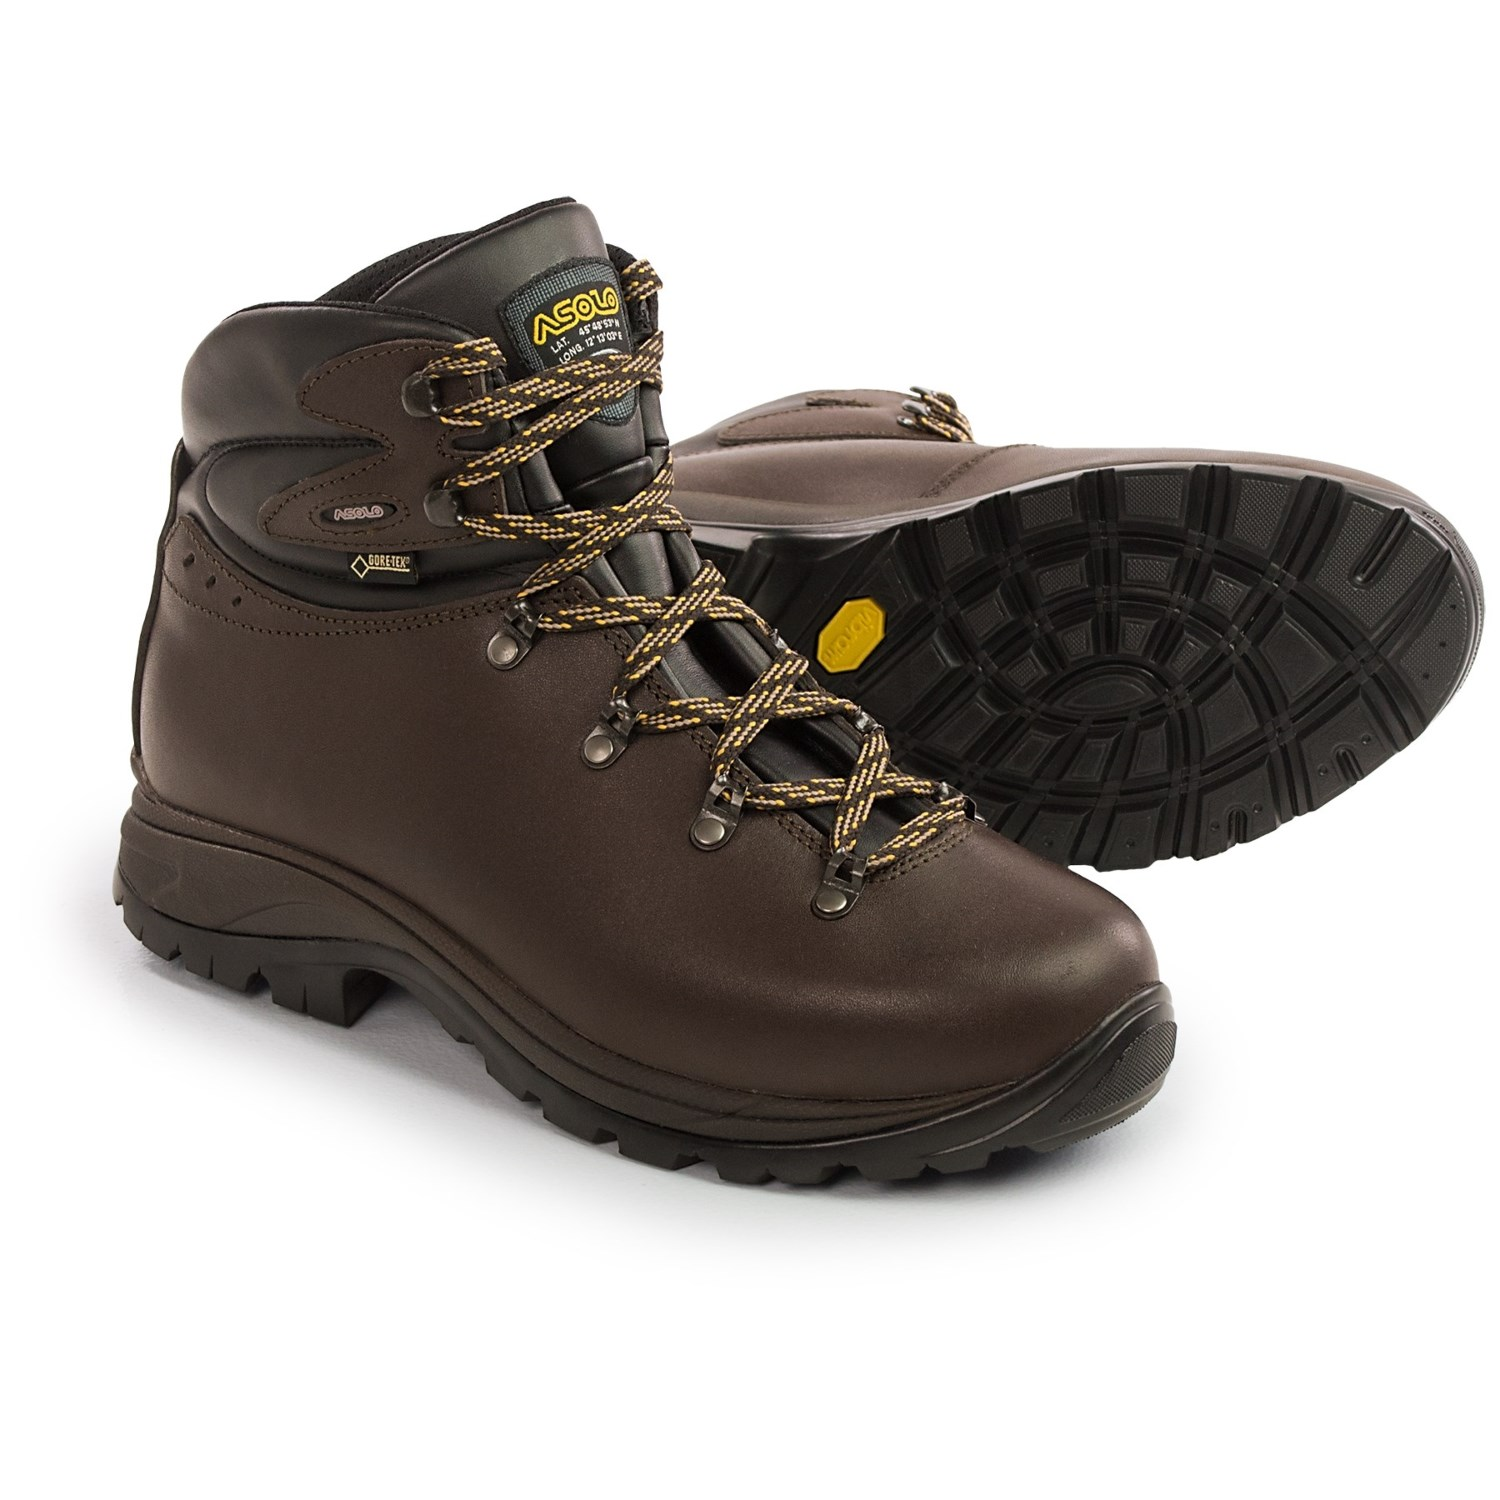 Men's Boots: Average savings of 50% at Sierra Trading Post